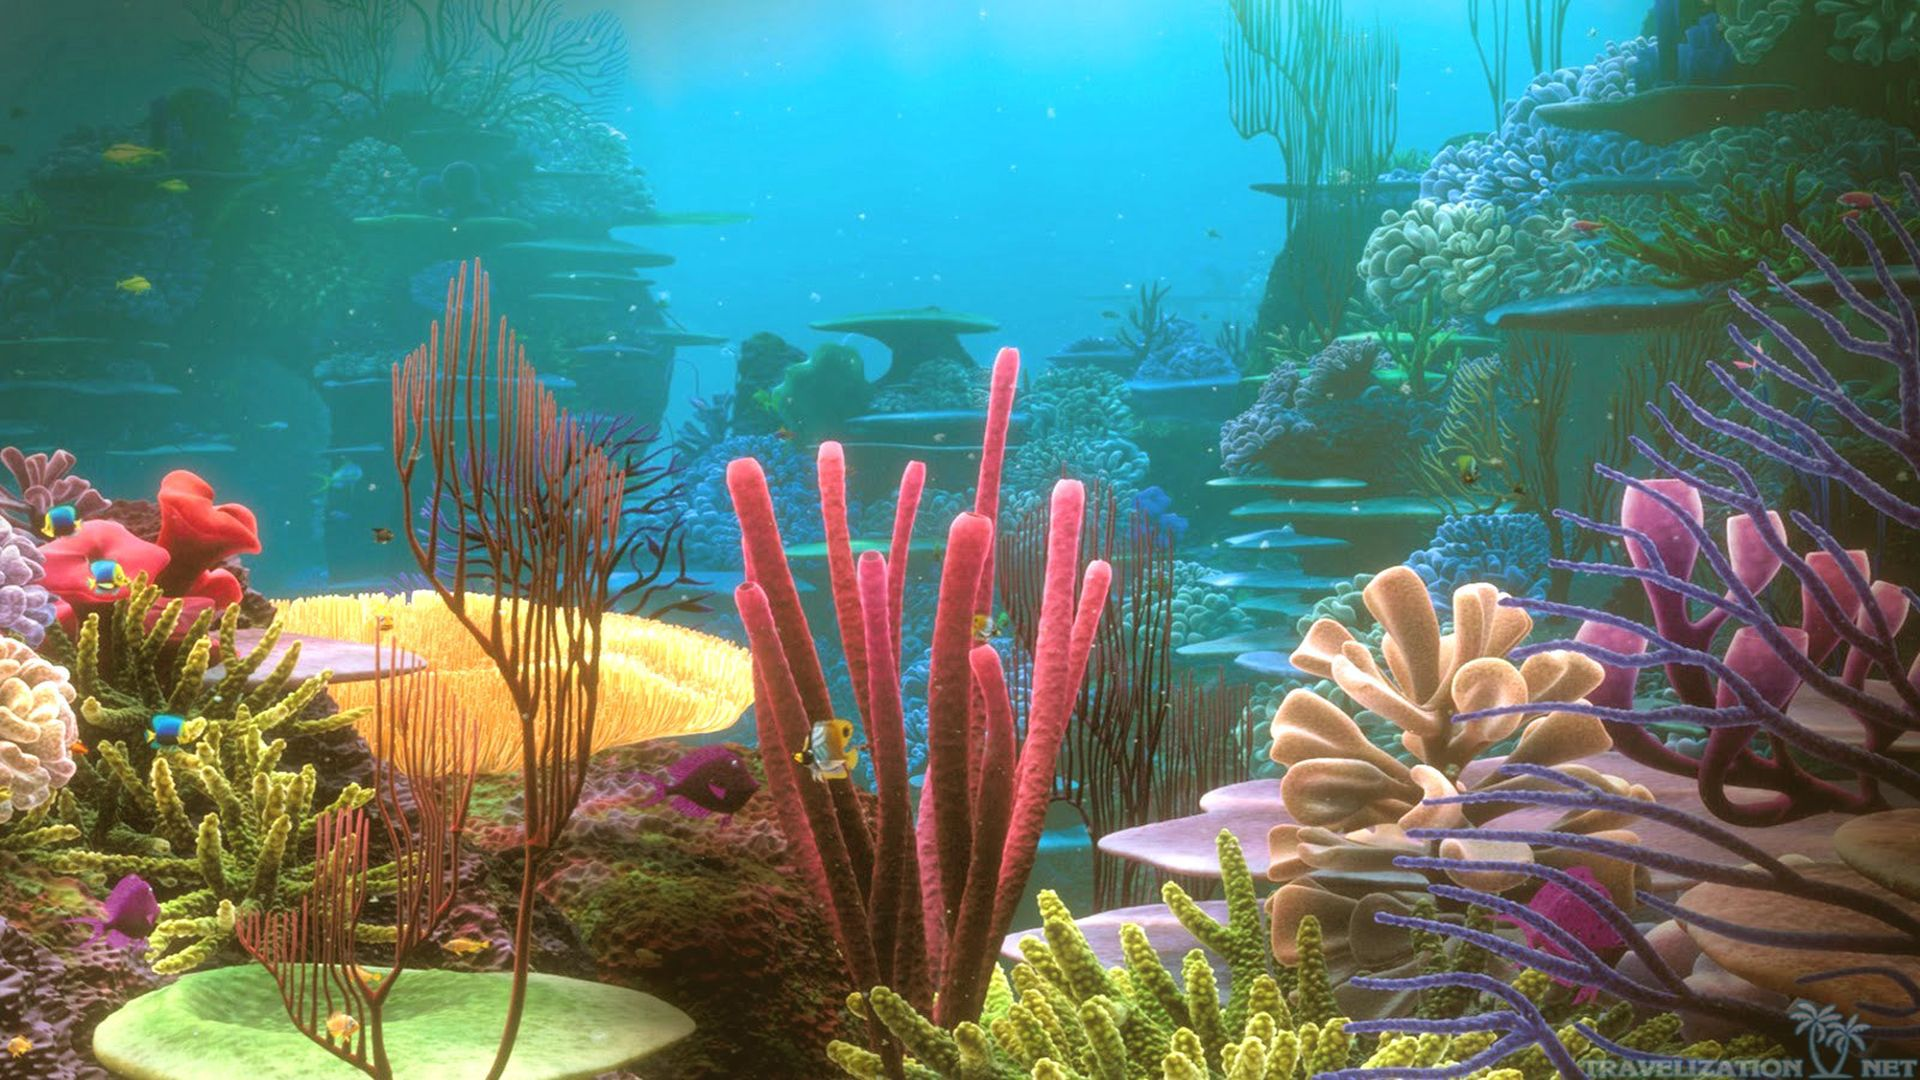 Coral reef pictures for kids NASA Climate Kids : Gallery of Oceans